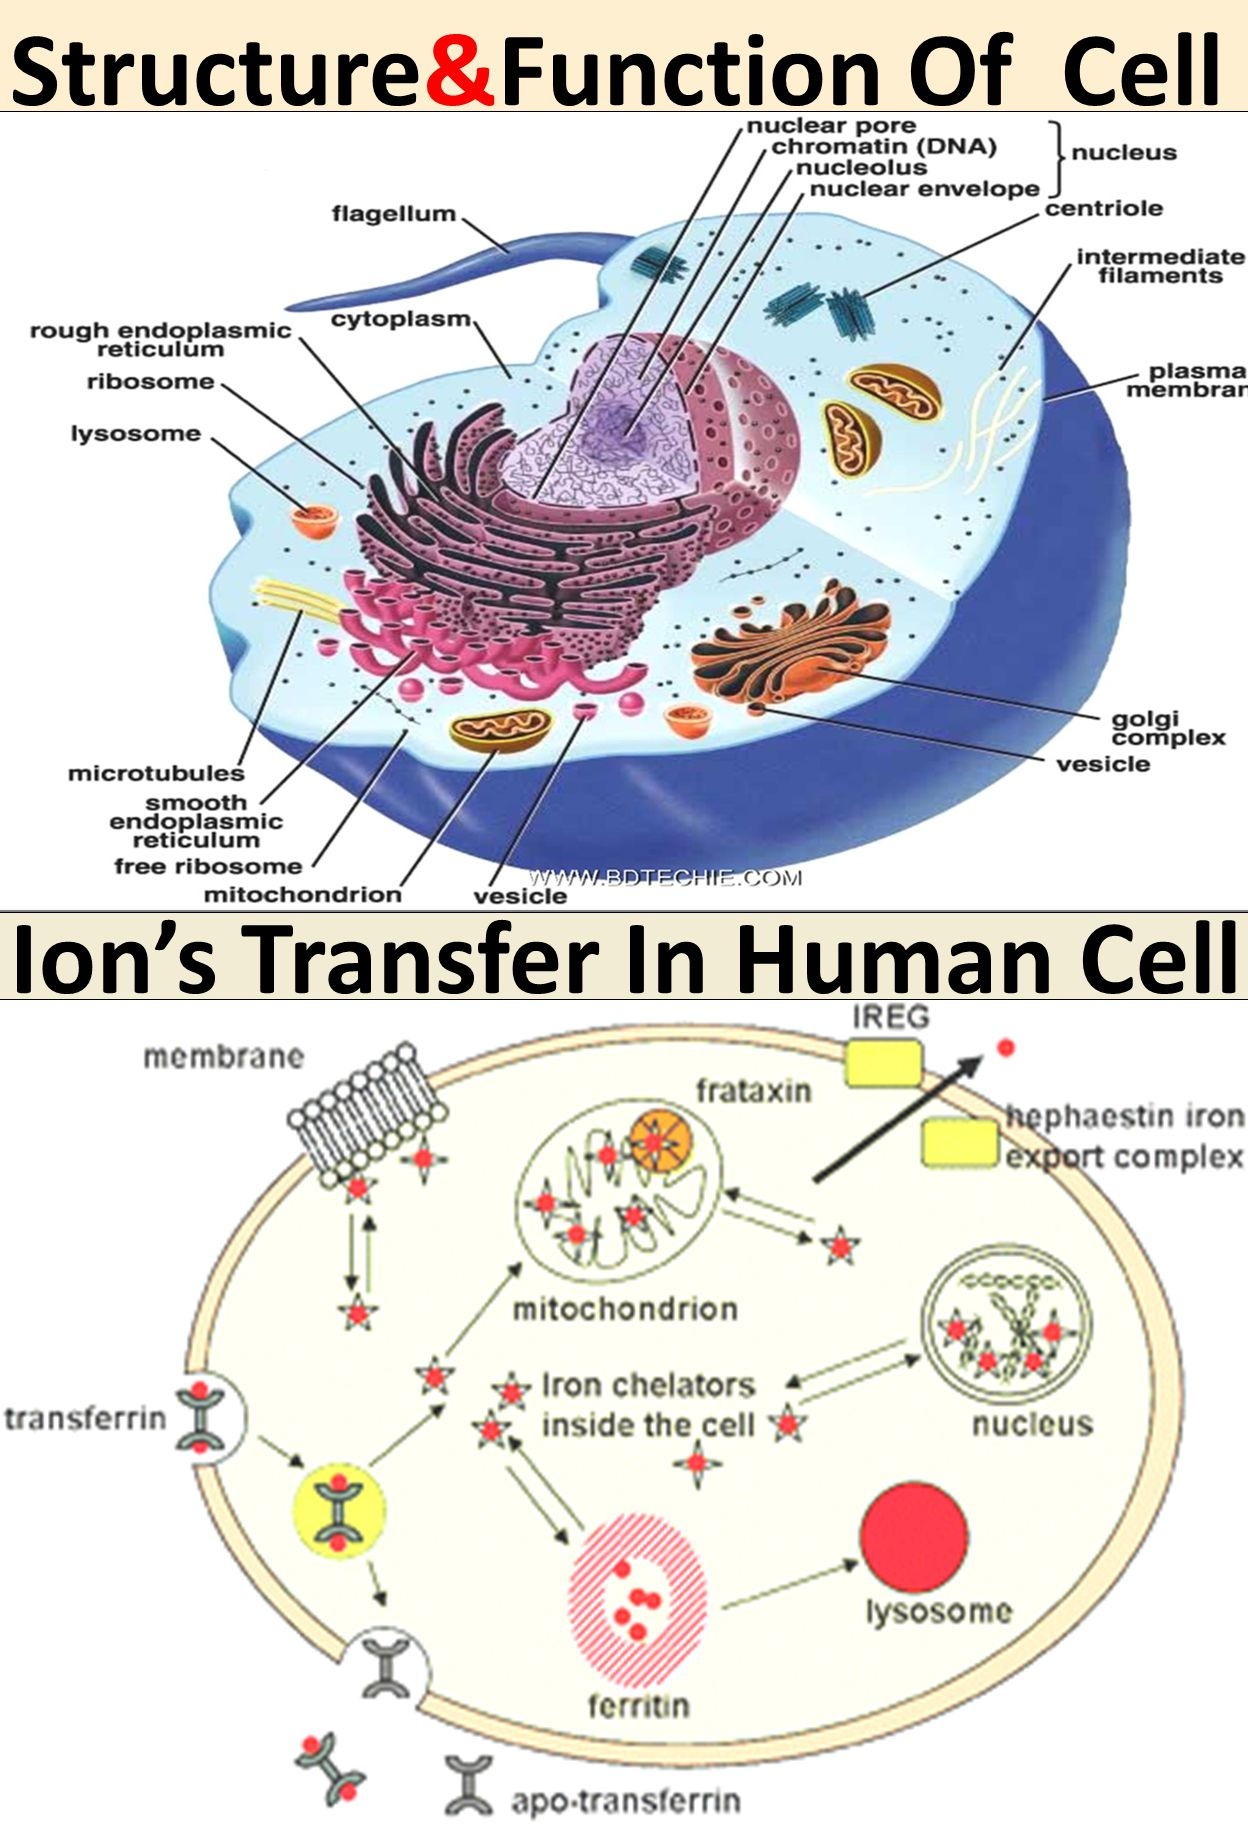 Ion's Transfer In Human Cell Structure&Function Of Cell